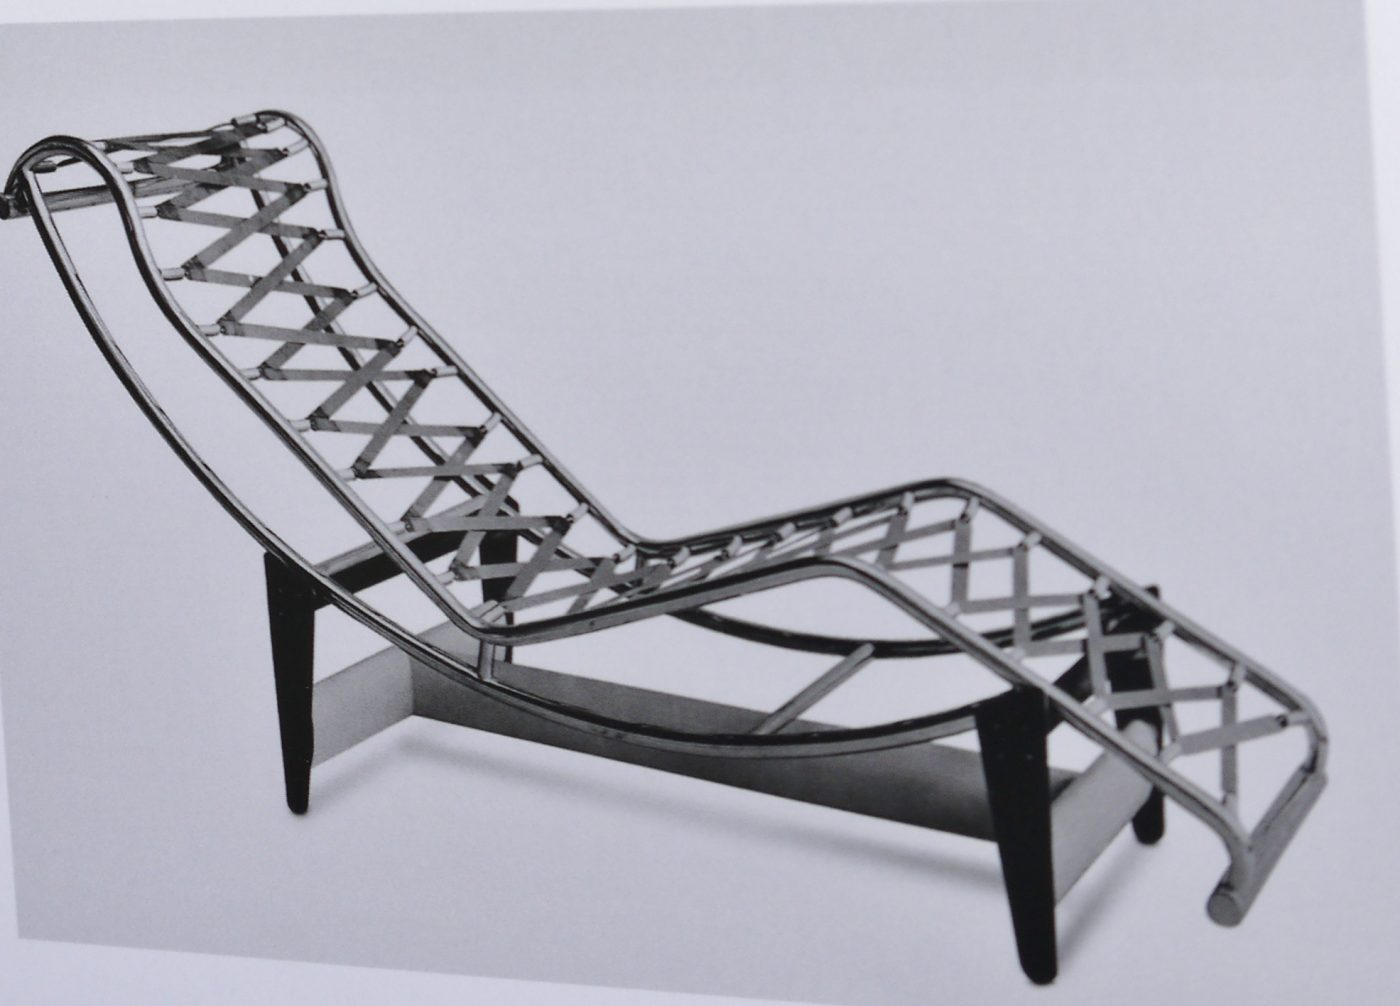 Chaise longue basculante, version 1929